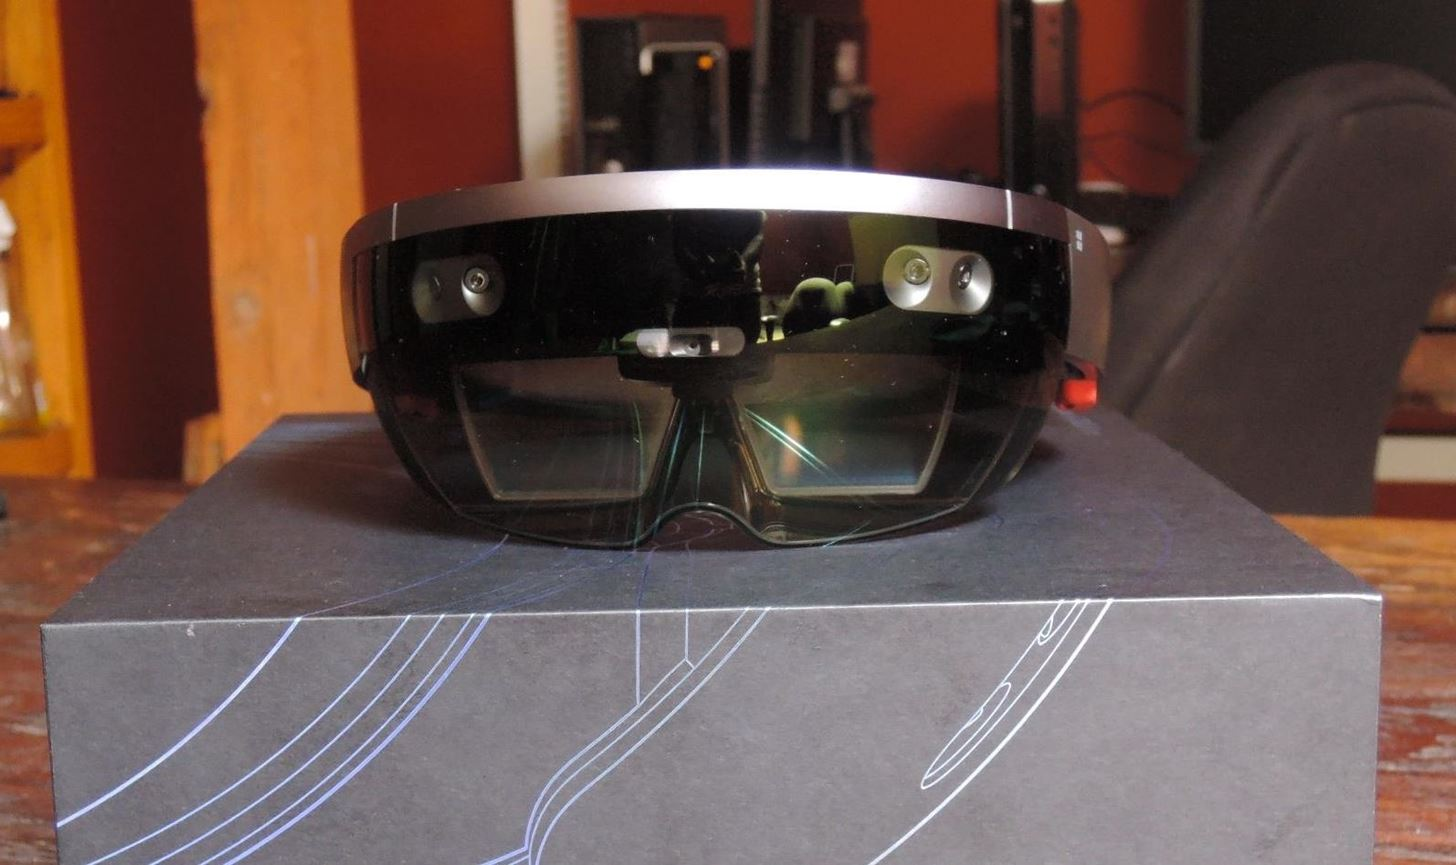 Your First Look at the HoloLens Development Edition